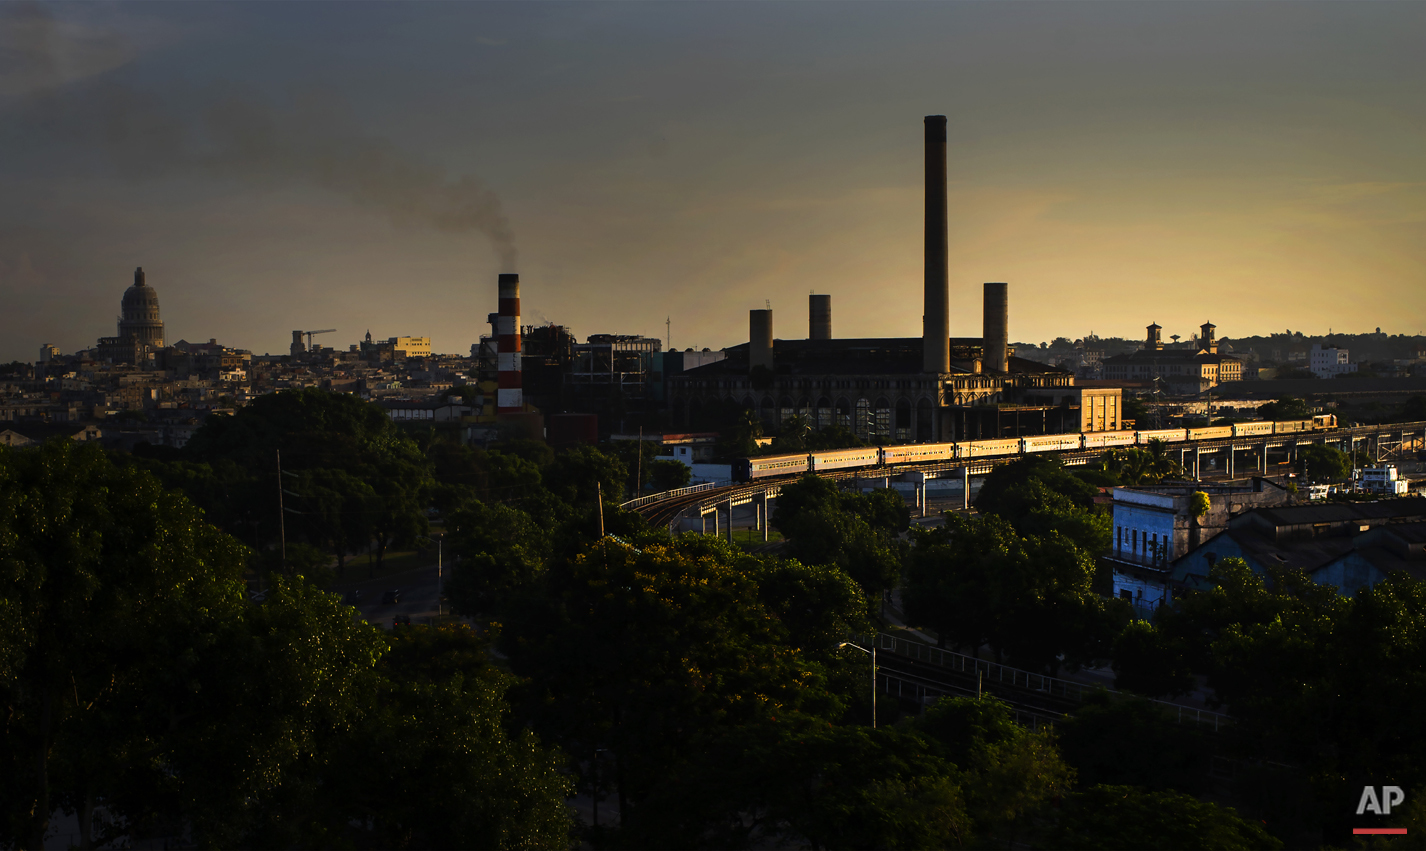 In this Aug. 28, 2015  photo, a train that departed Santiago de Cuba arrives at sunrise to Havana, Cuba. Cubans pay a little more than $1 to shuttle goods or visit faraway family, between the capital and Santiago. Visiting foreigners are charged $30 for the same trip. (AP Photo/Ramon Espinosa)